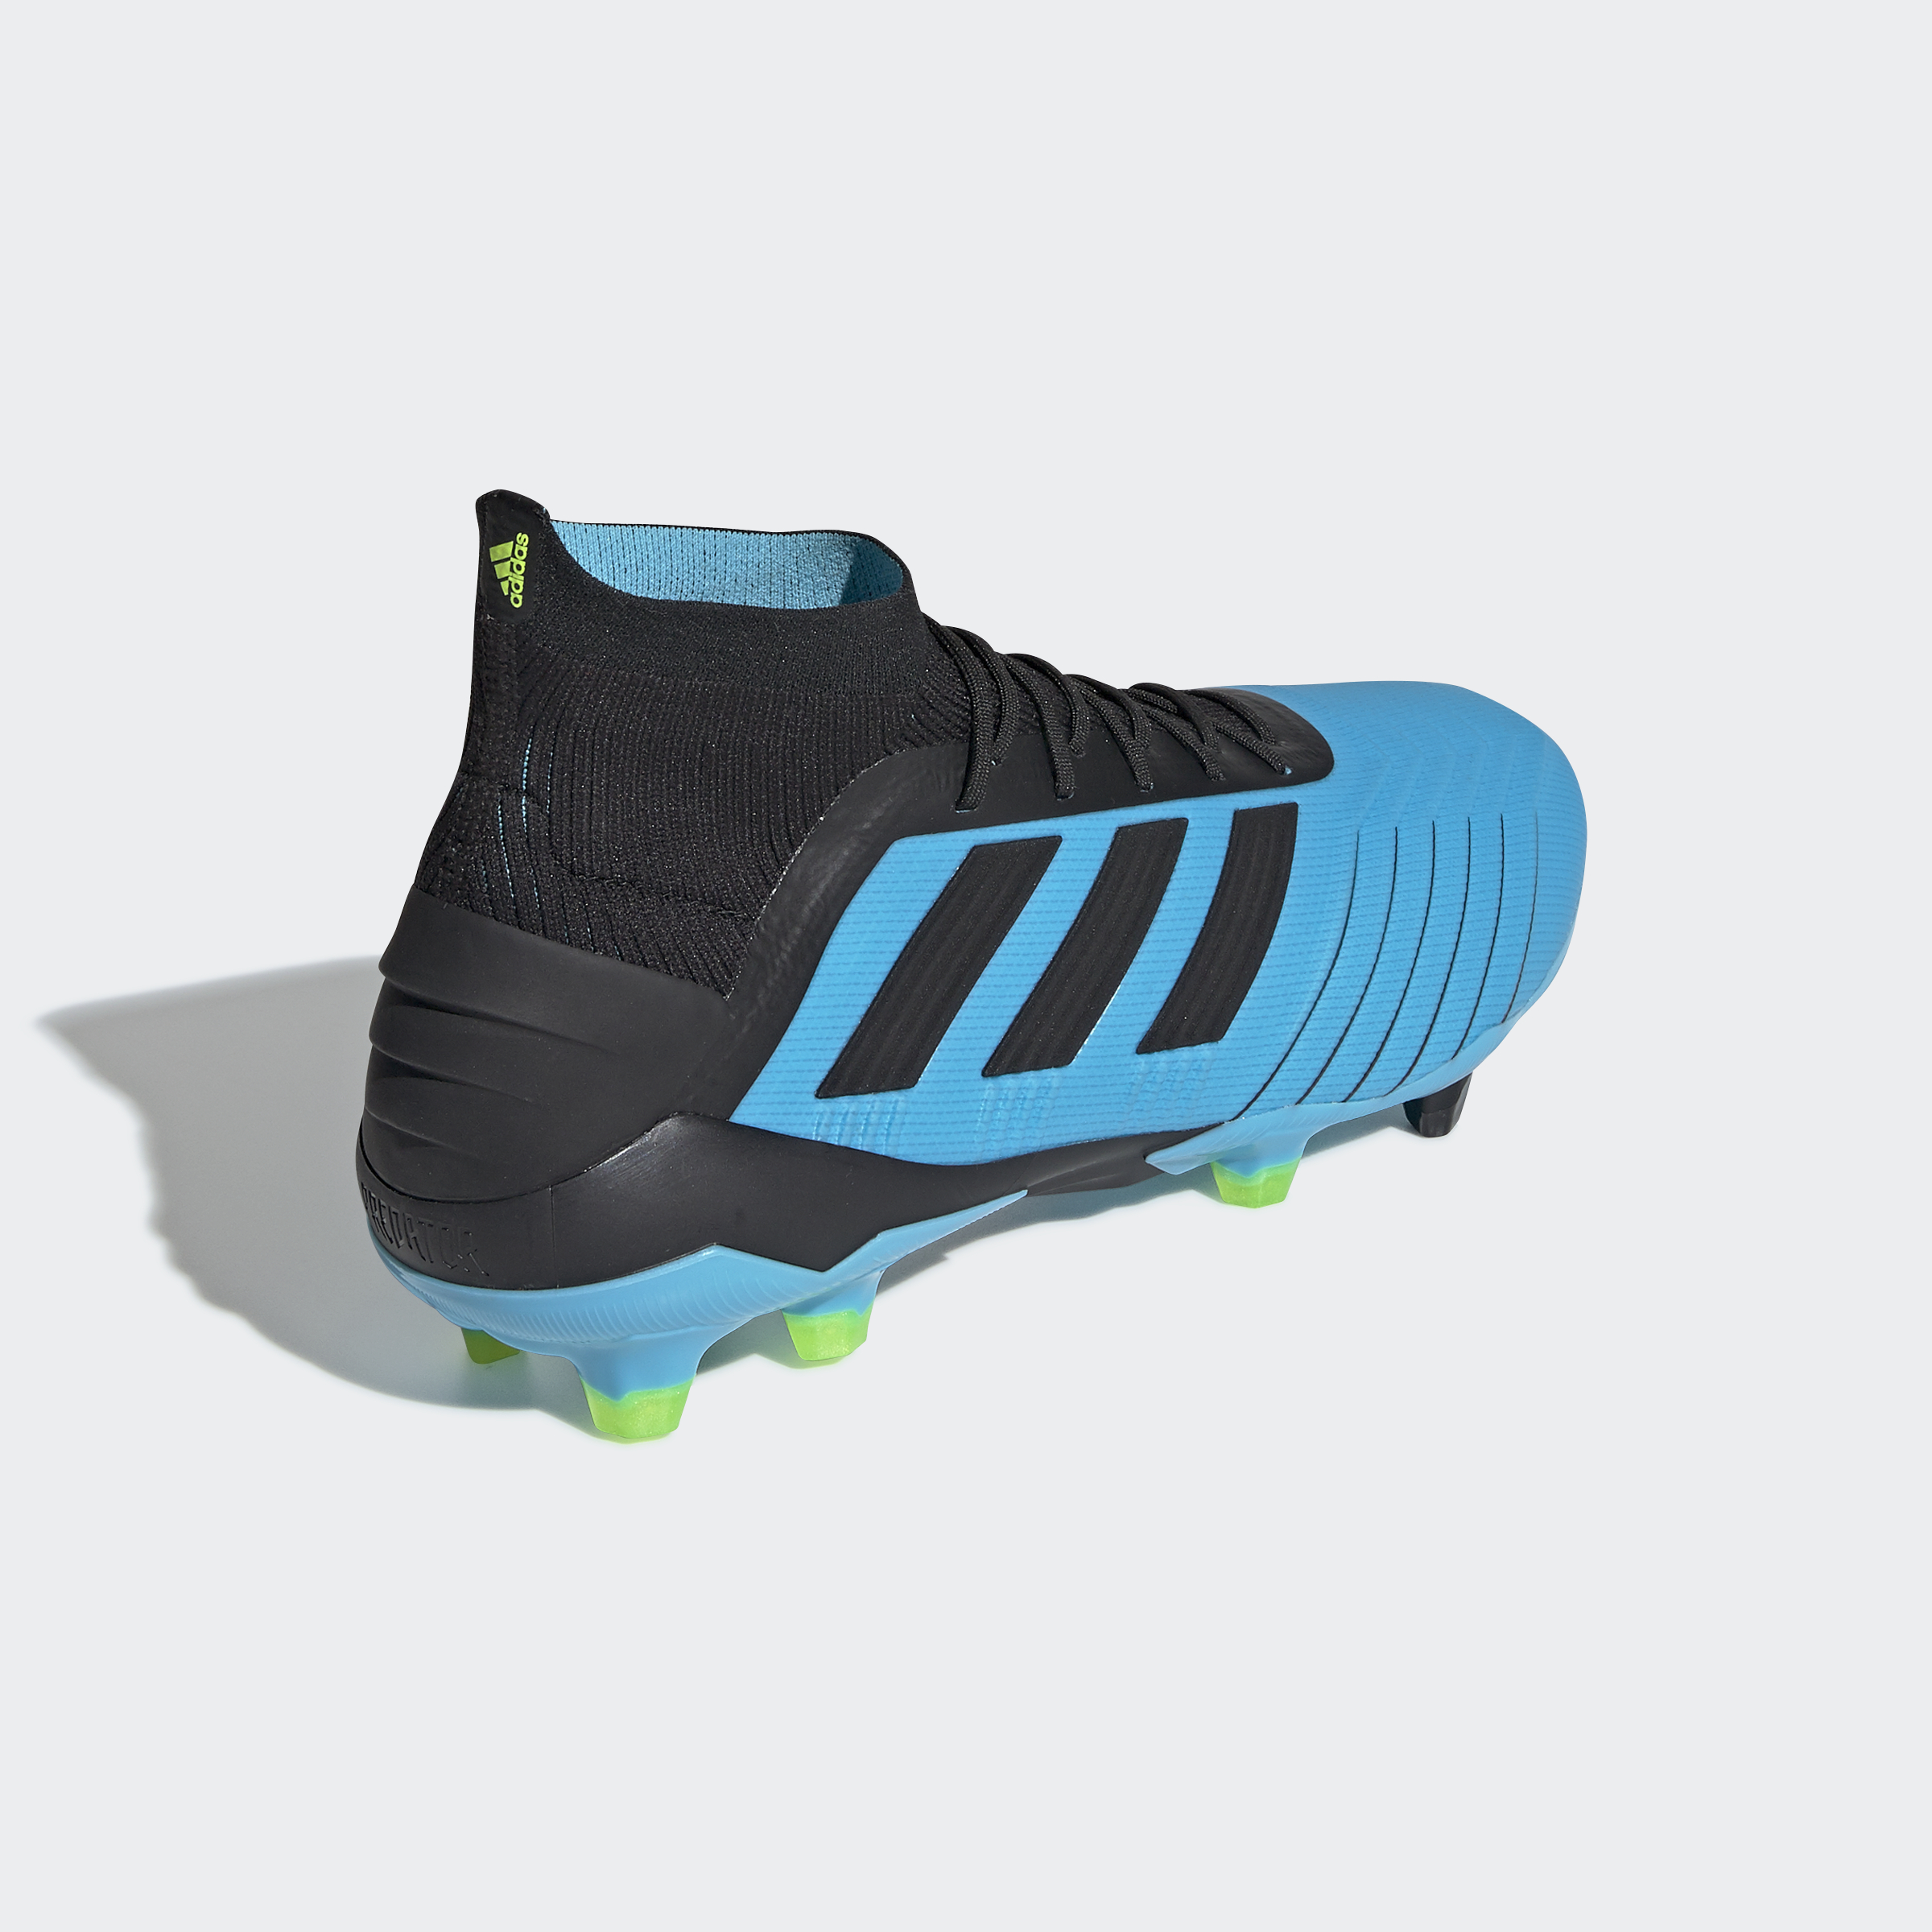 adidas-Predator-19-1-Firm-Ground-Cleats-Football-Boots thumbnail 27